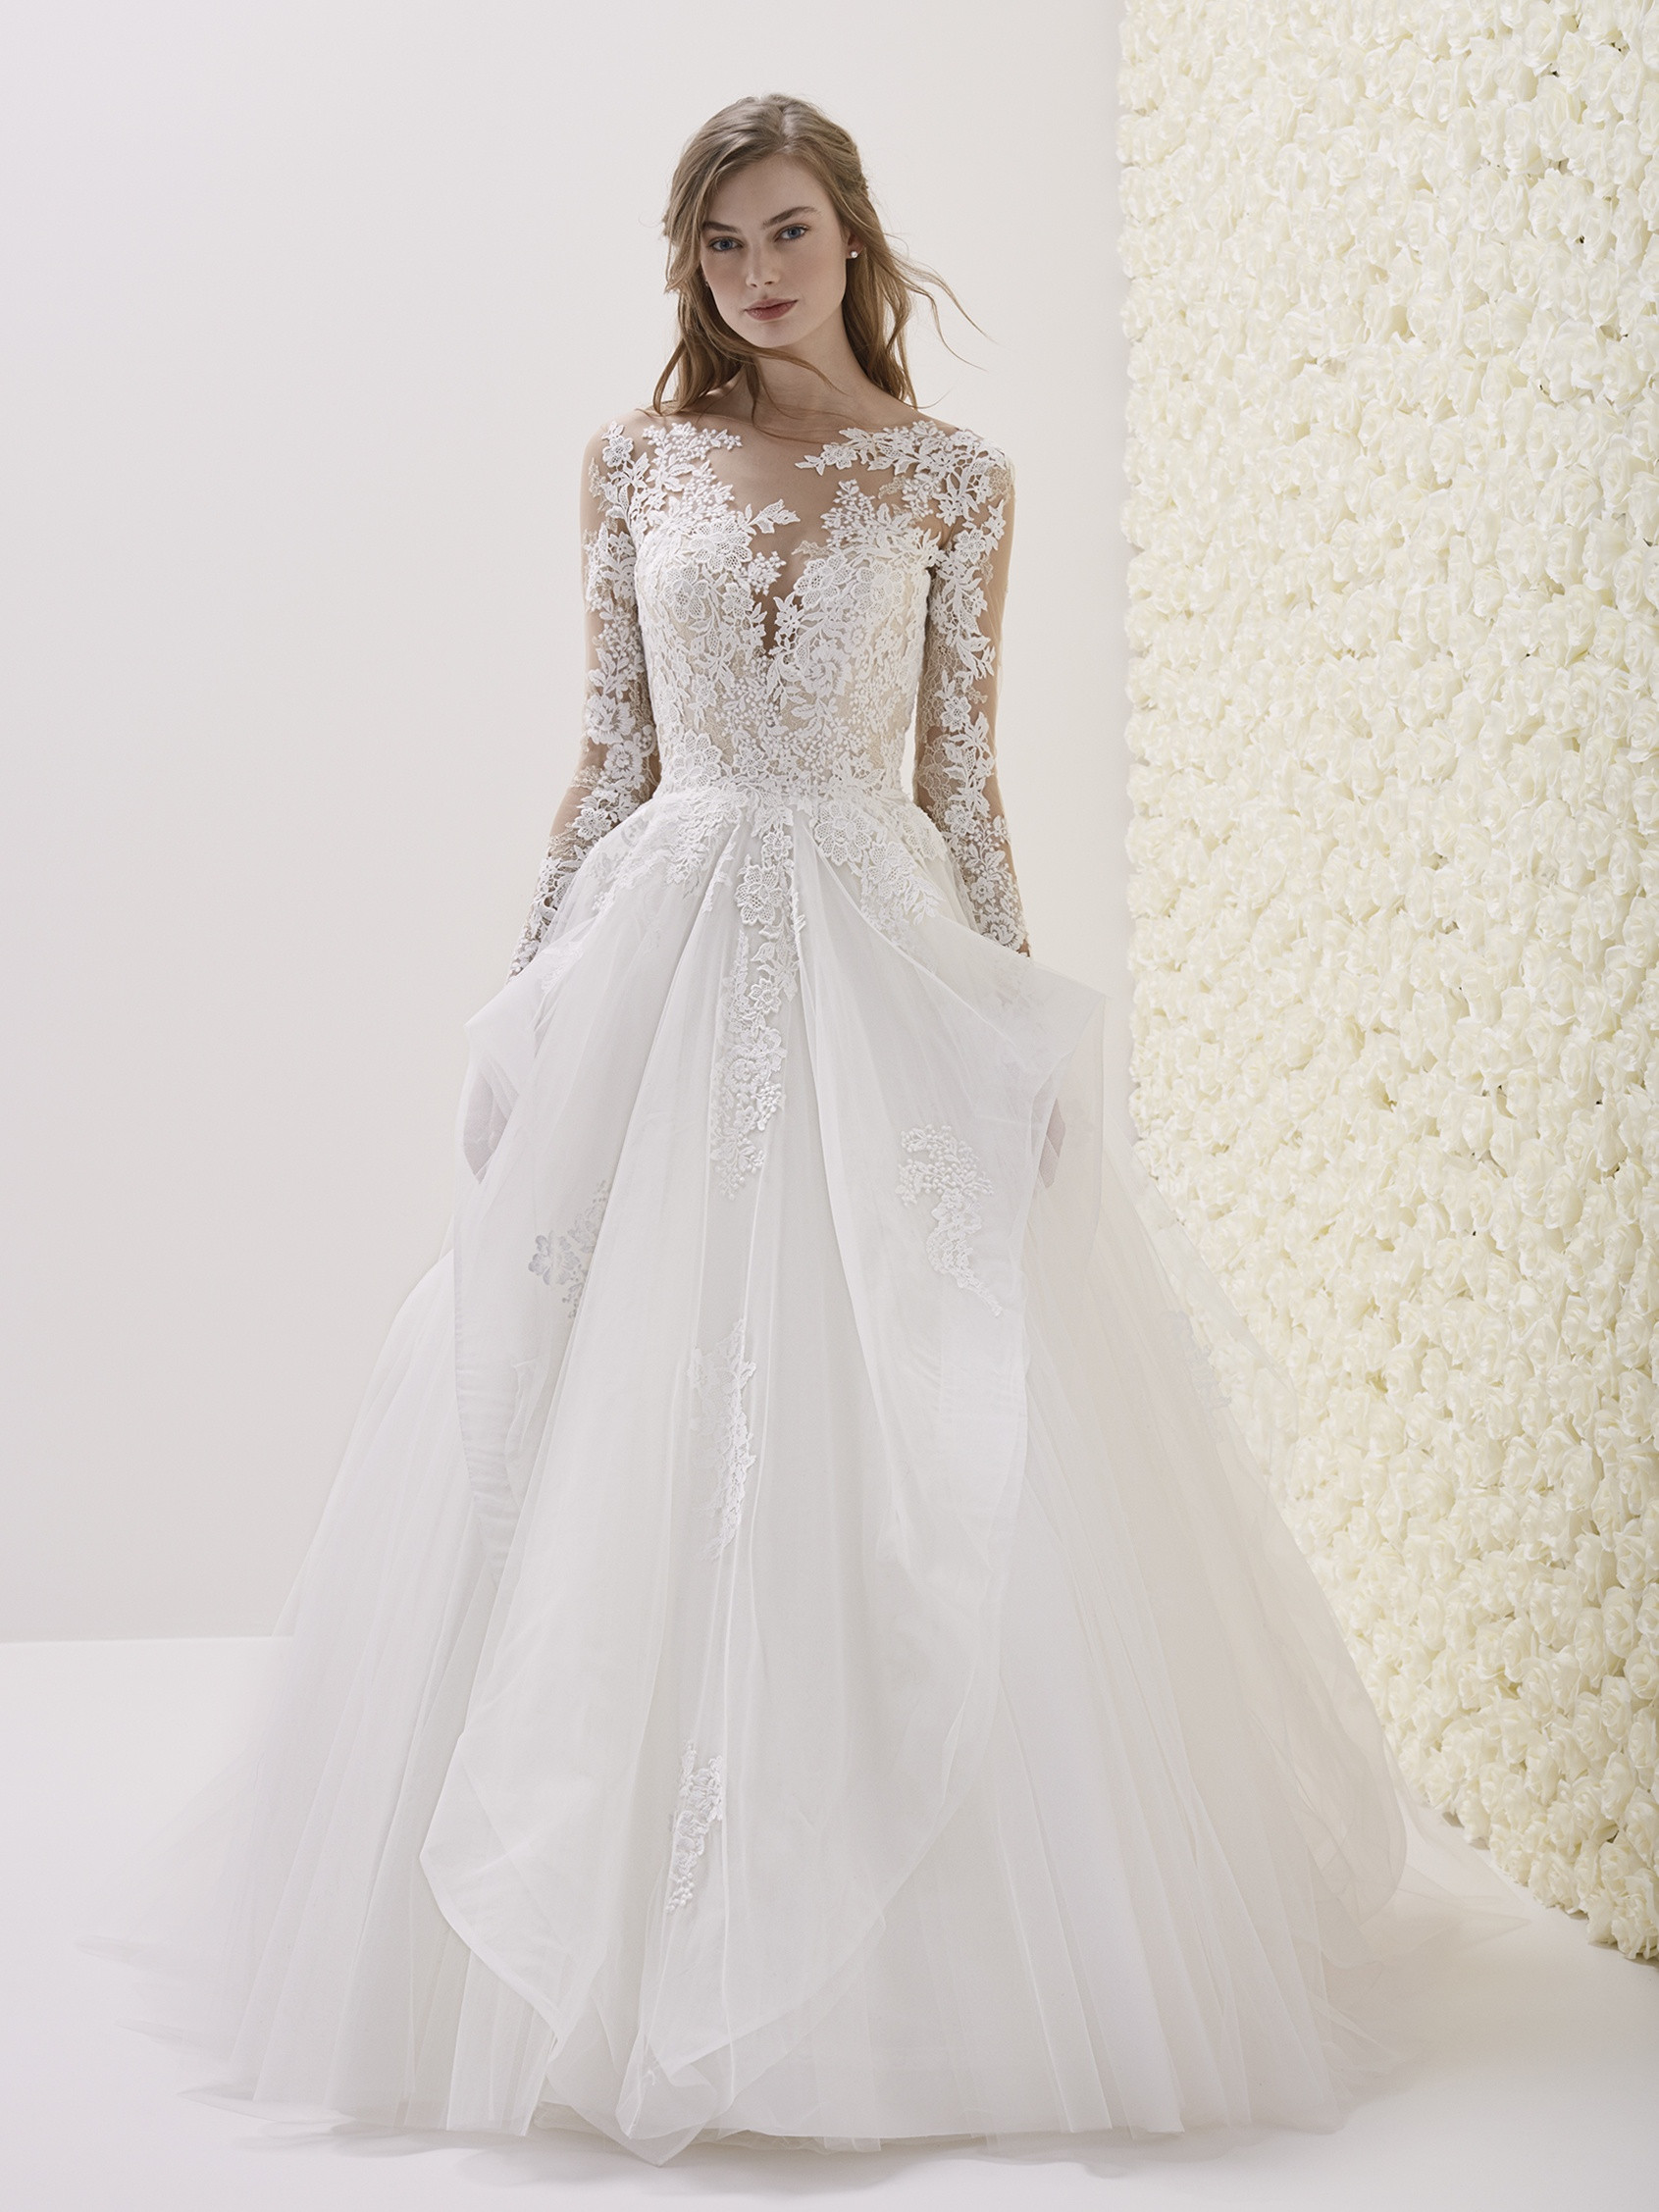 Novia D'art Wedding Dresses